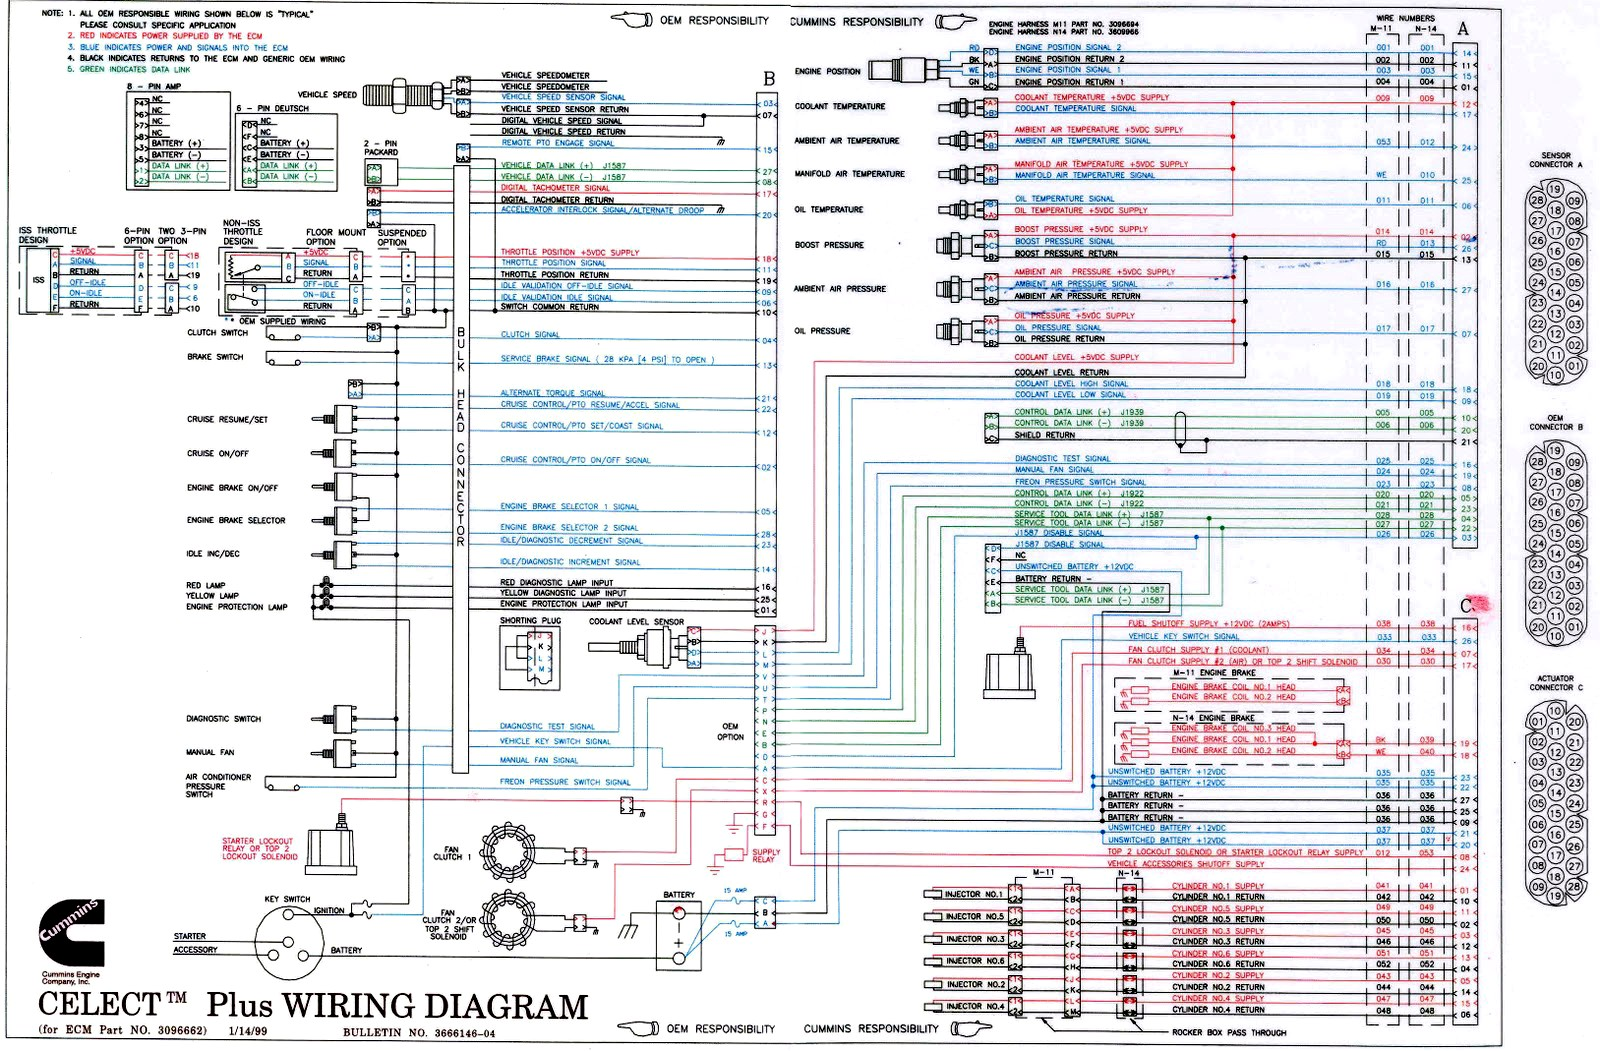 M11 Ecm Wiring Diagram Quick Start Guide Of Gm Celect Plus Cummins Servicio Diesel Americano 2010 Equinox